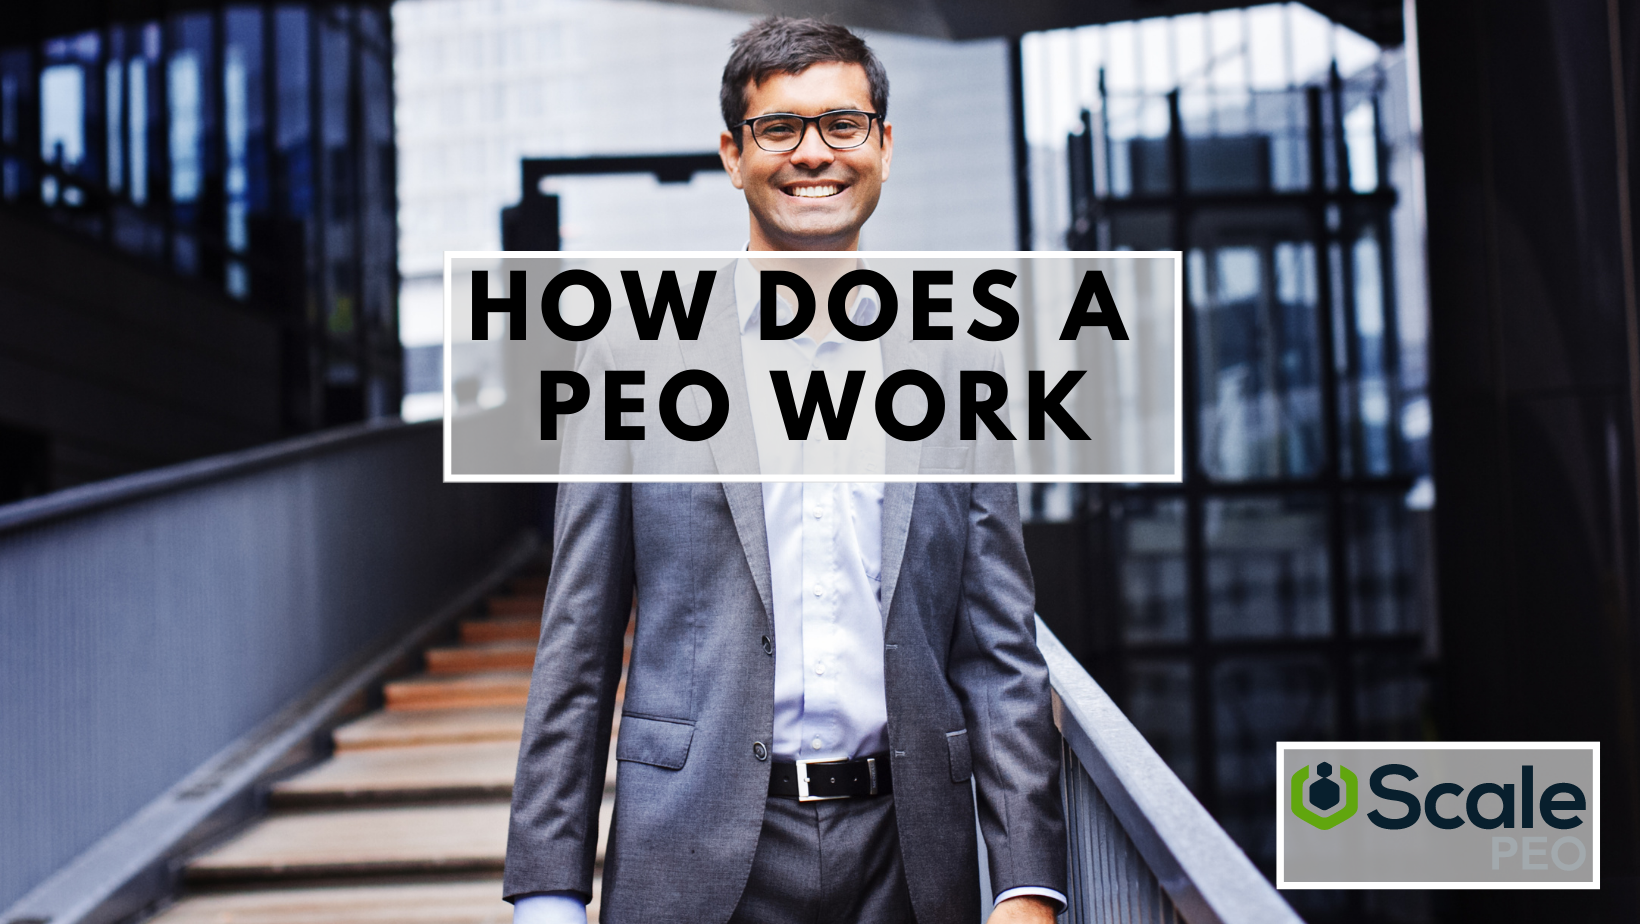 how does PEO work featured image